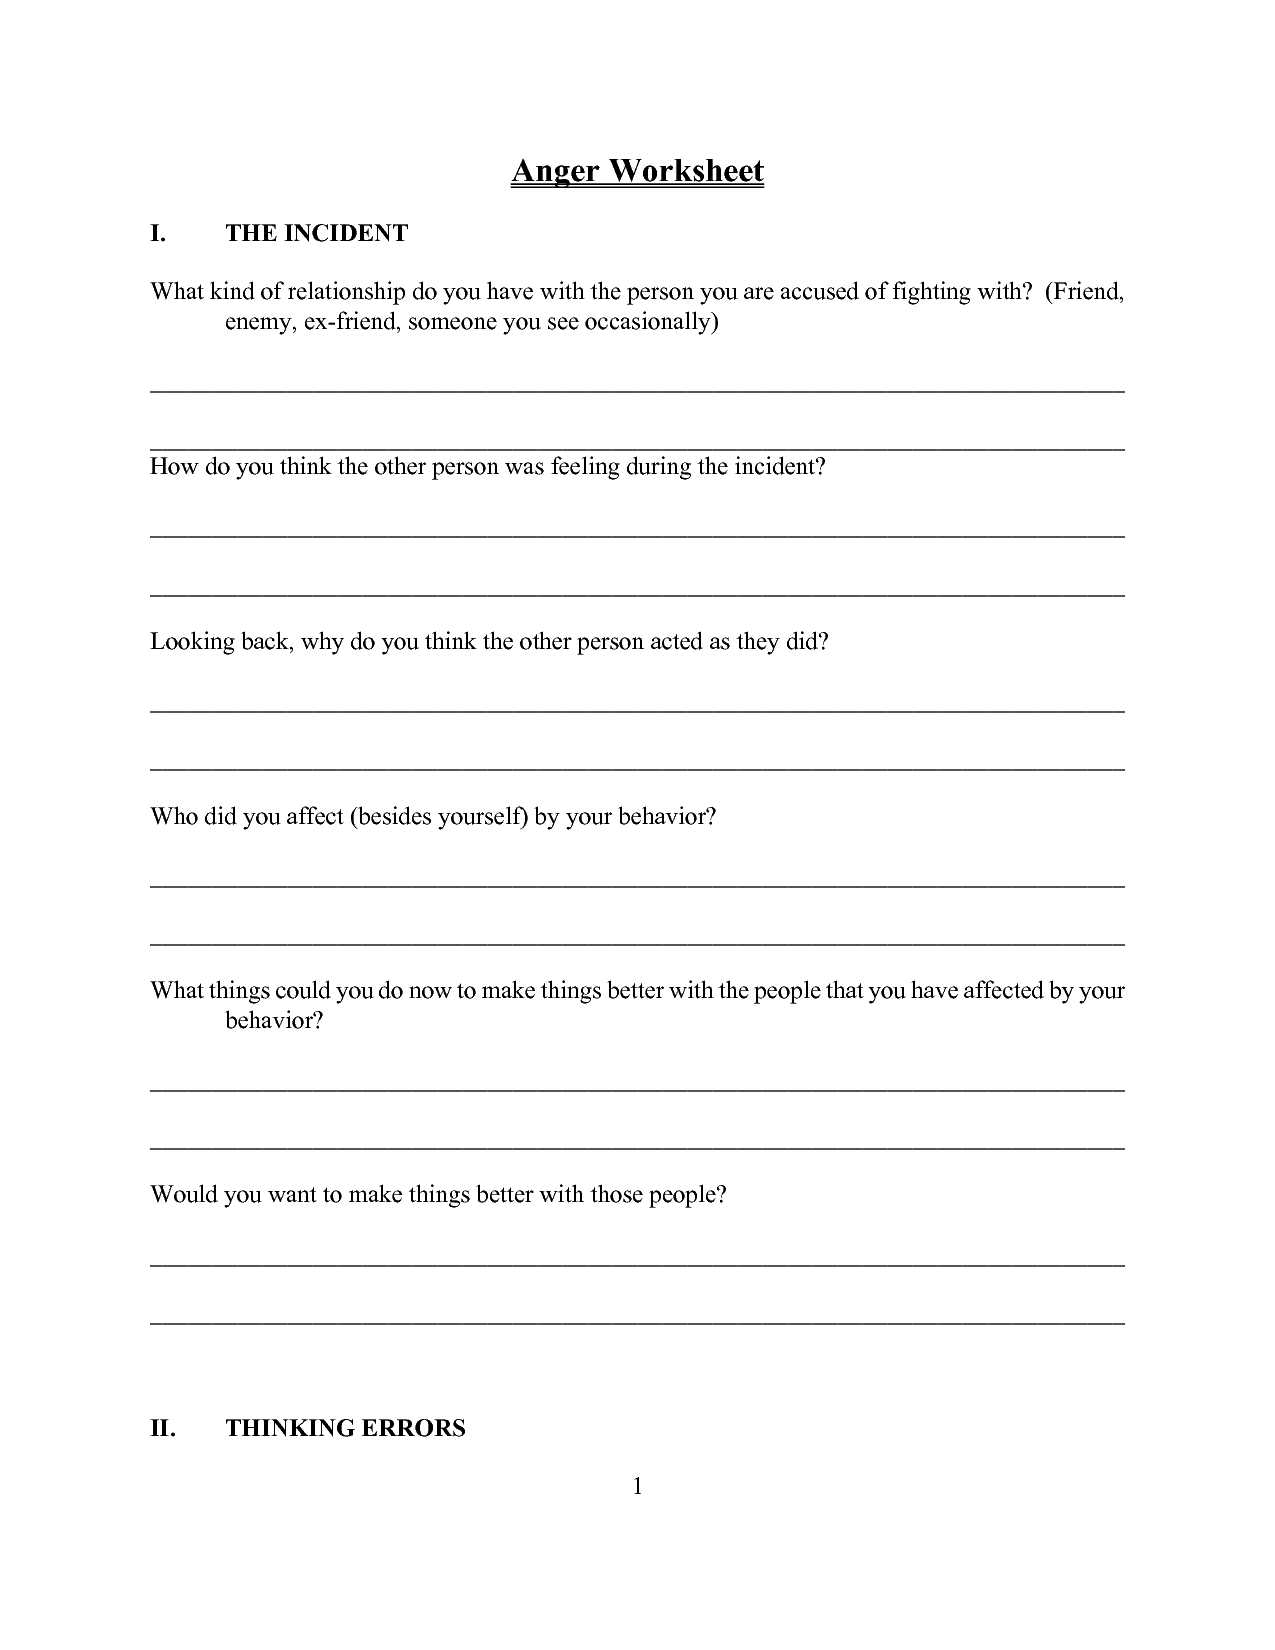 Child Anger Management Worksheets Also Worksheet Anger Management Worksheet Carlos Lomas Worksheet for